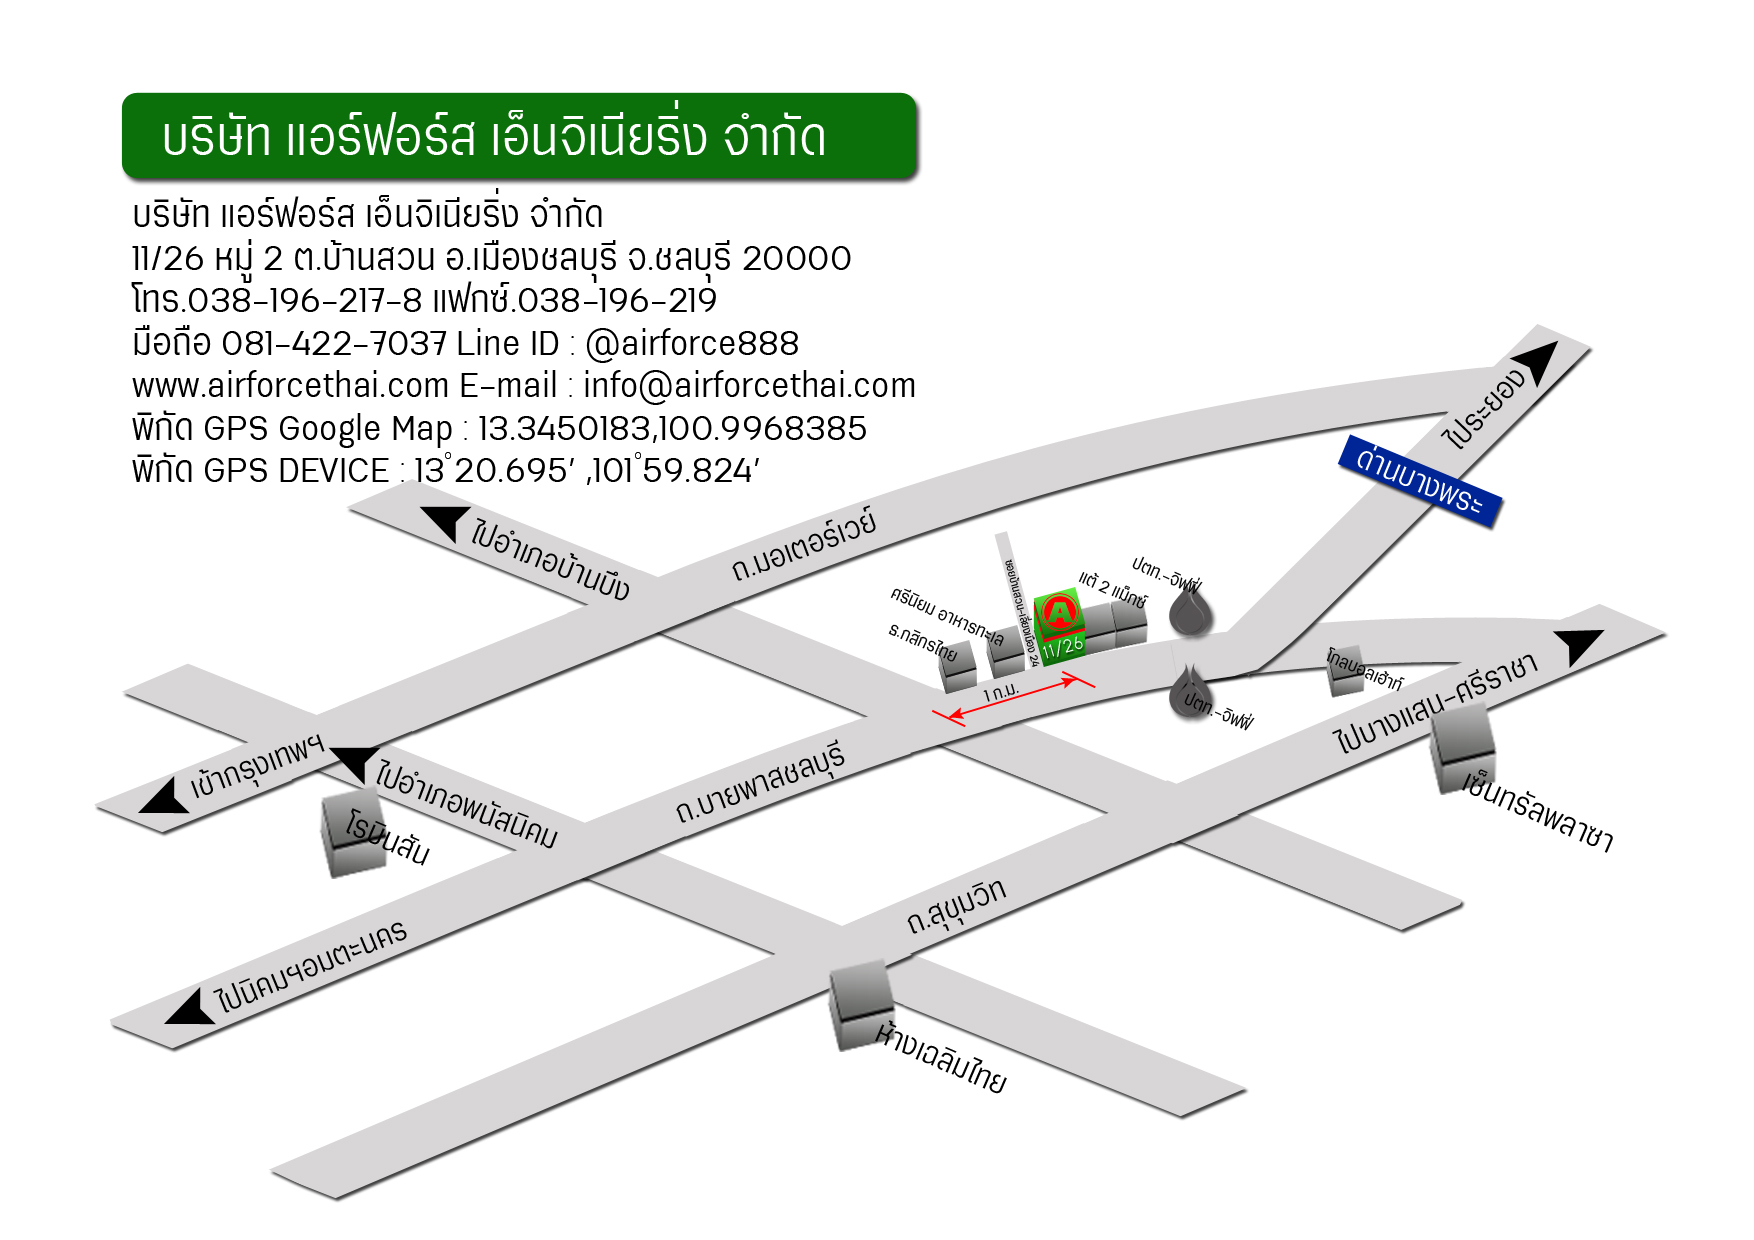 Airforce's Map | airforcethai